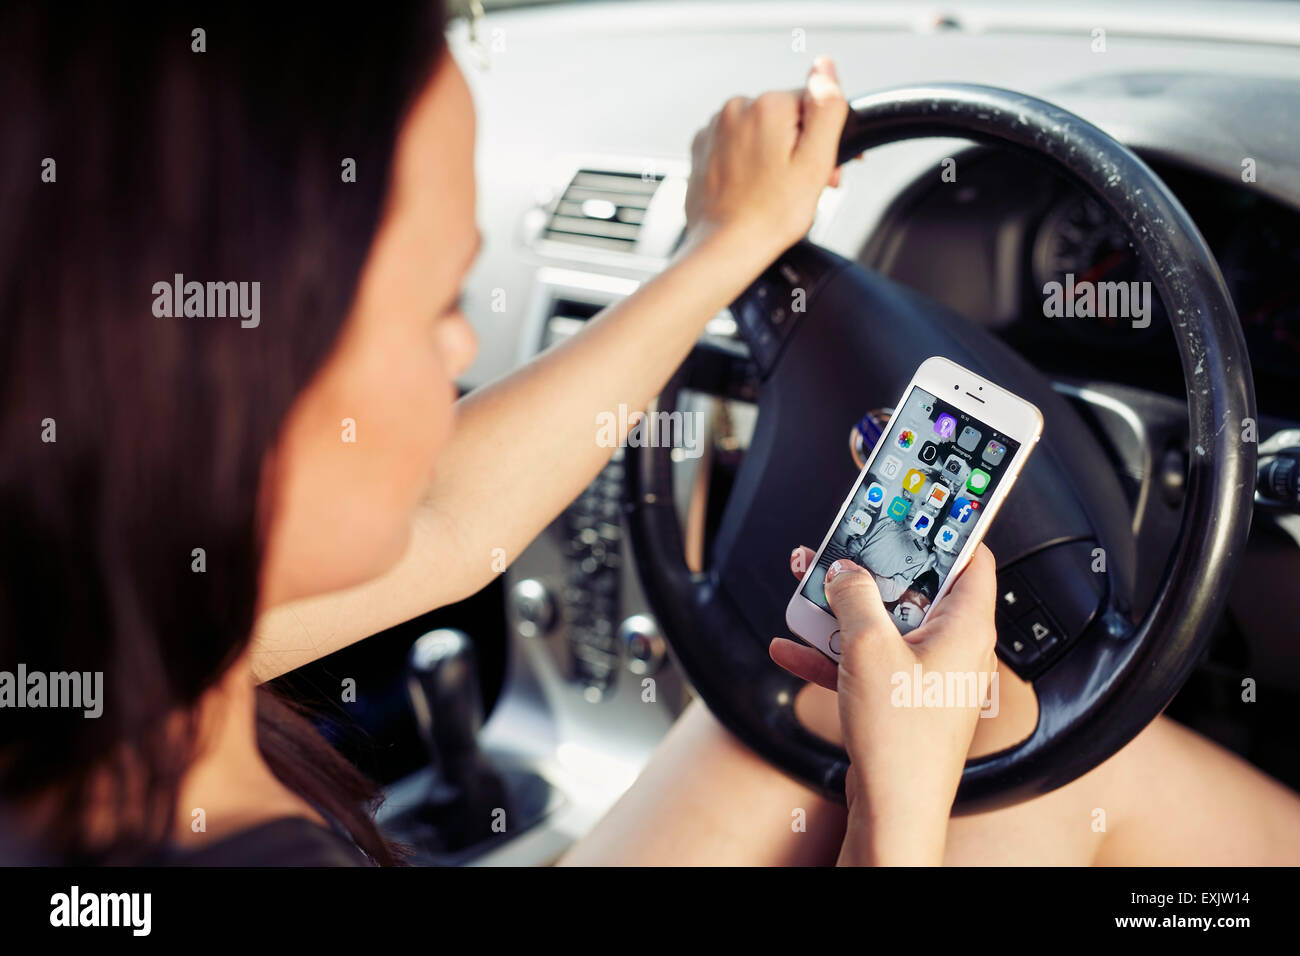 Woman using mobile phone whilst driving - Stock Image